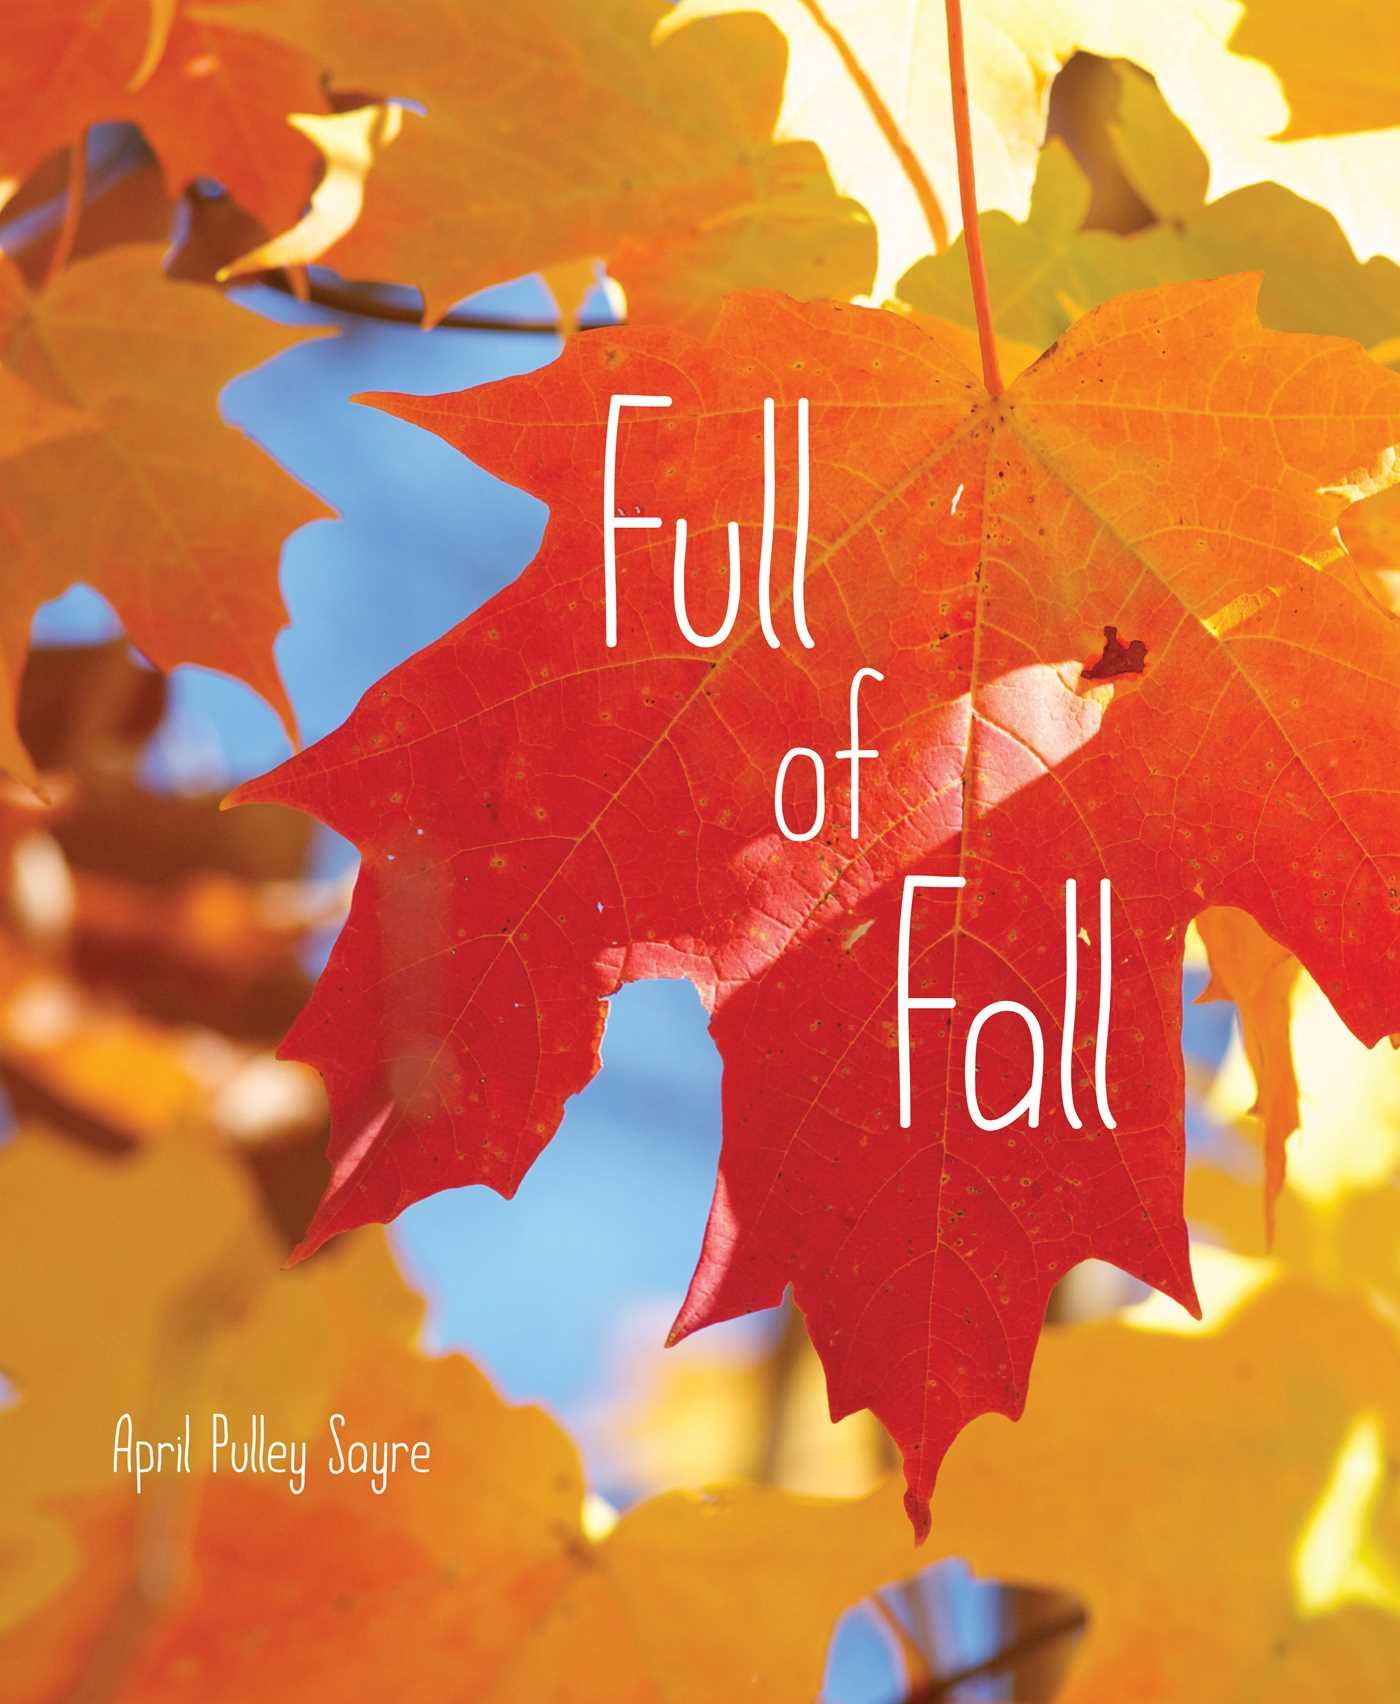 From the book where you might see the beautiful autumn leaves - From The Book Where You Might See The Beautiful Autumn Leaves 33